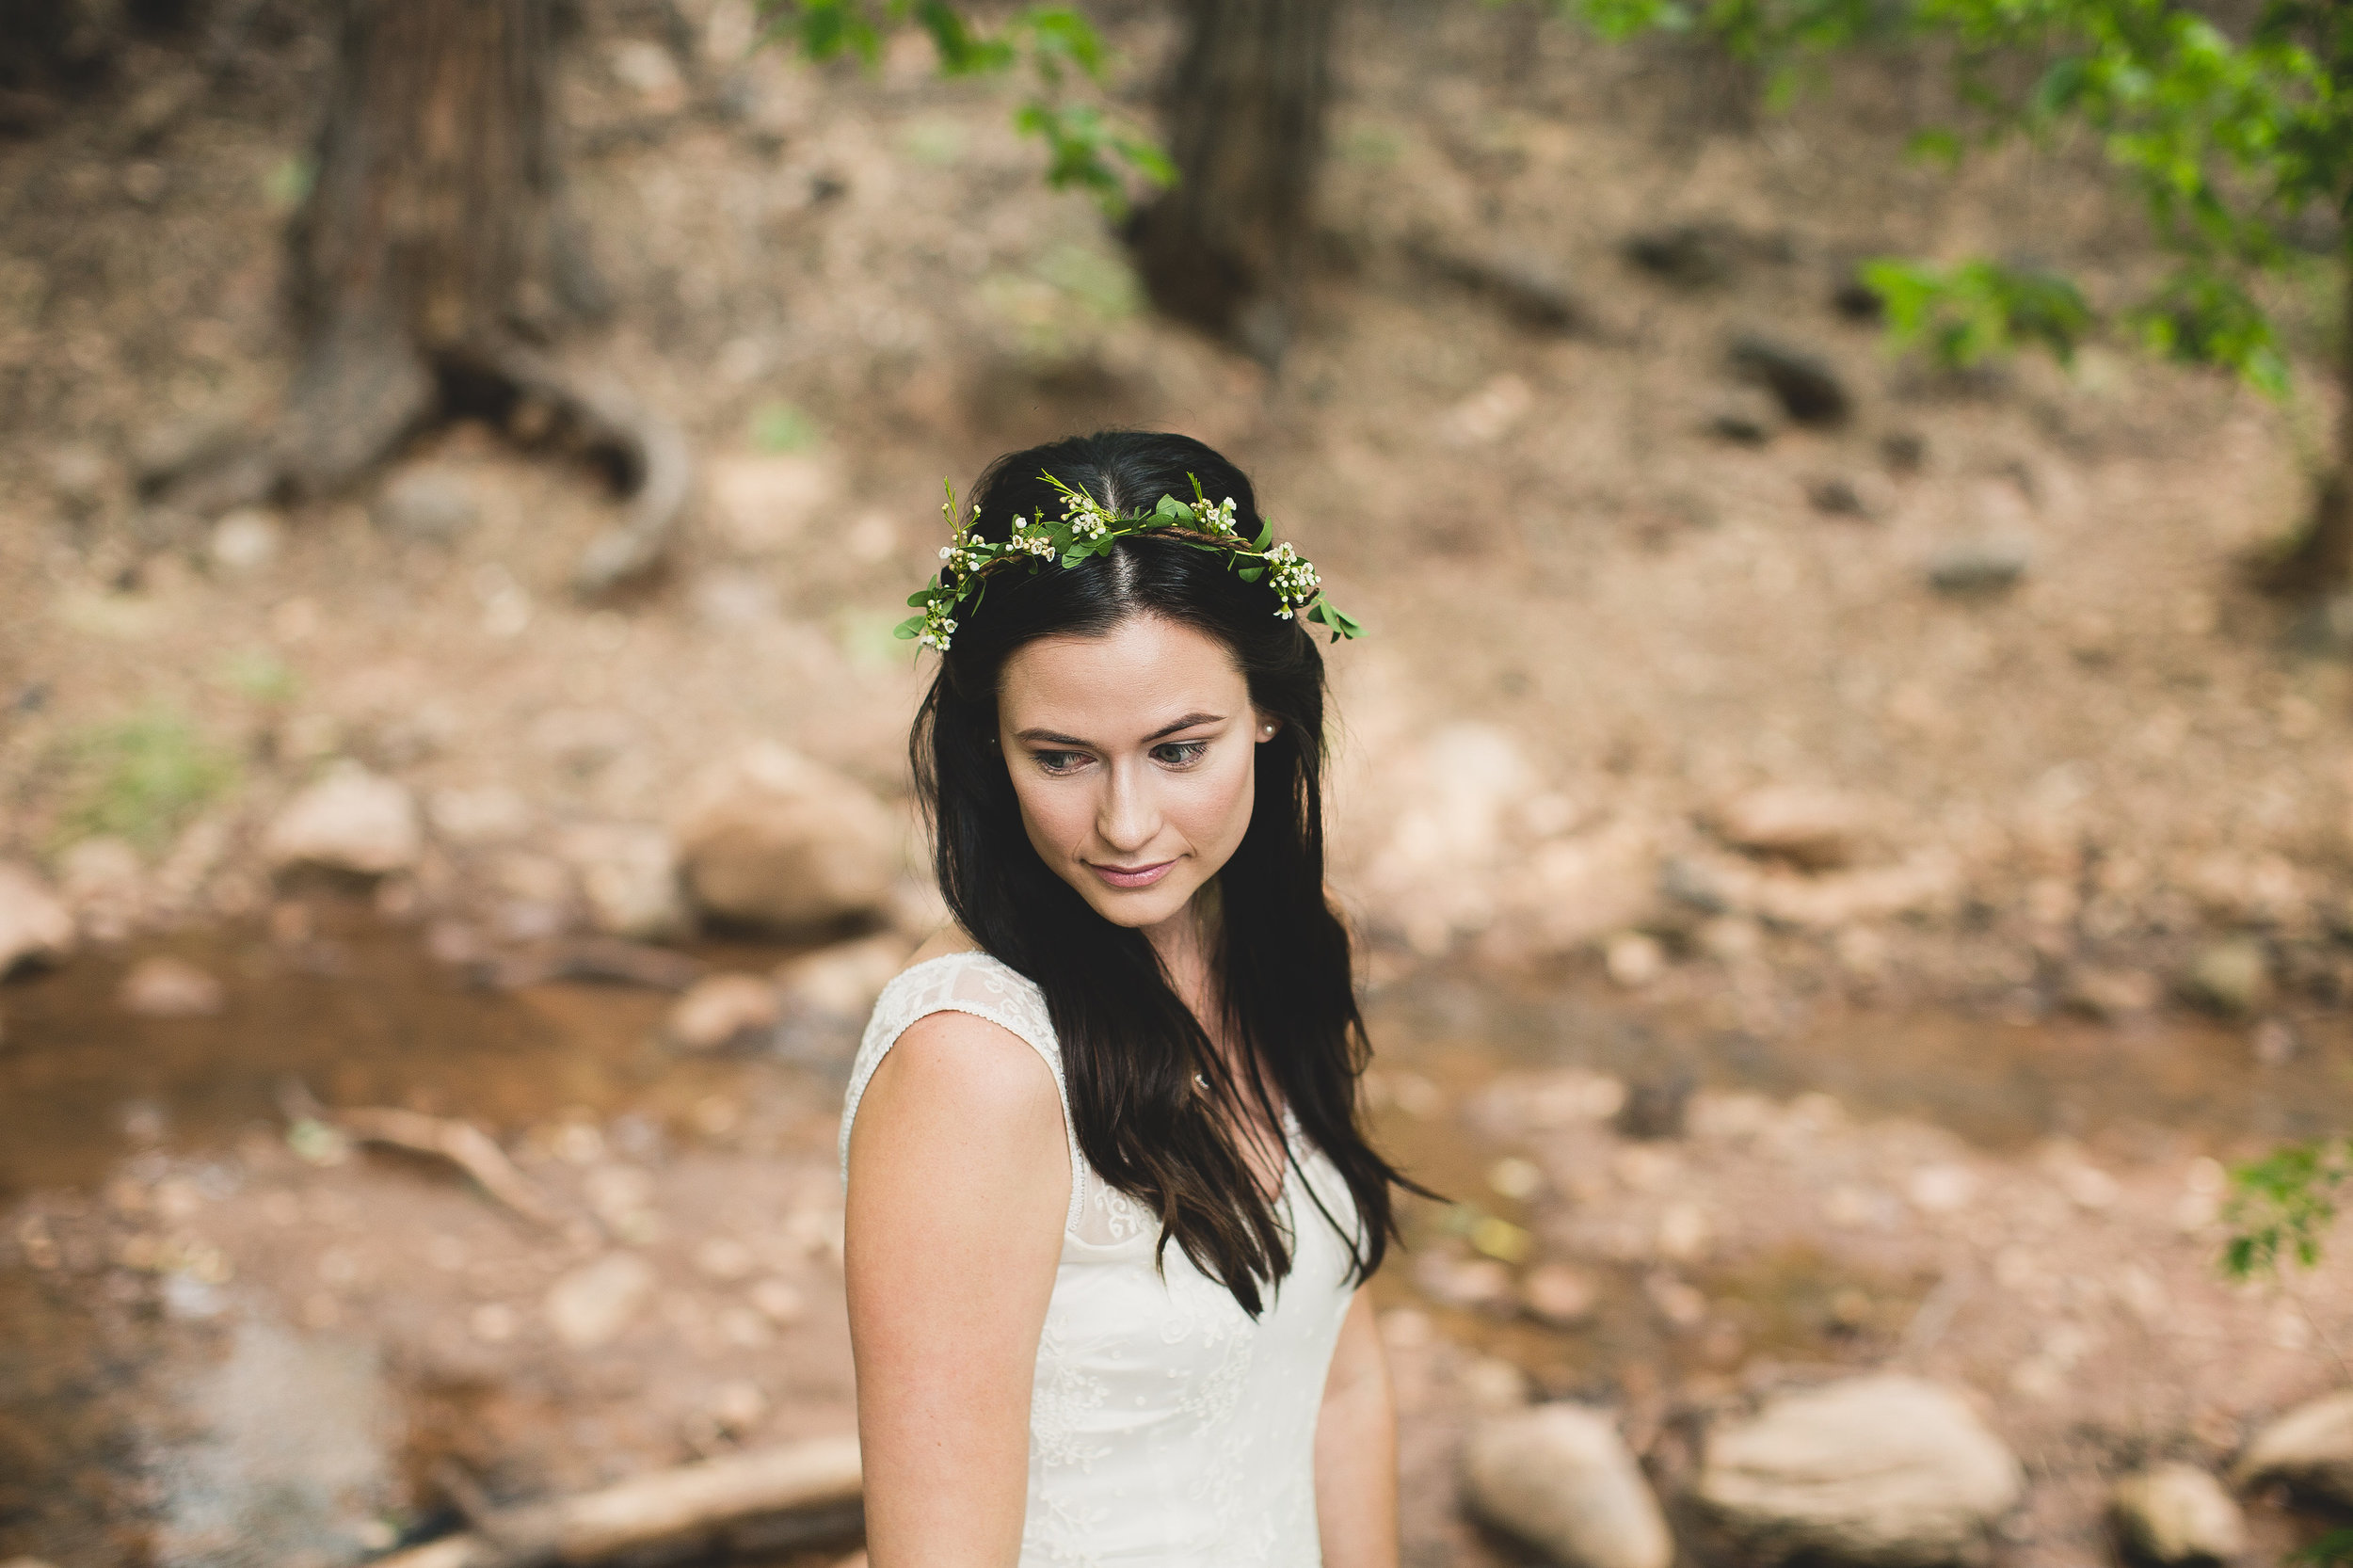 Boy Scout Camp Wedding - Bhldn Gown and Flower Crown